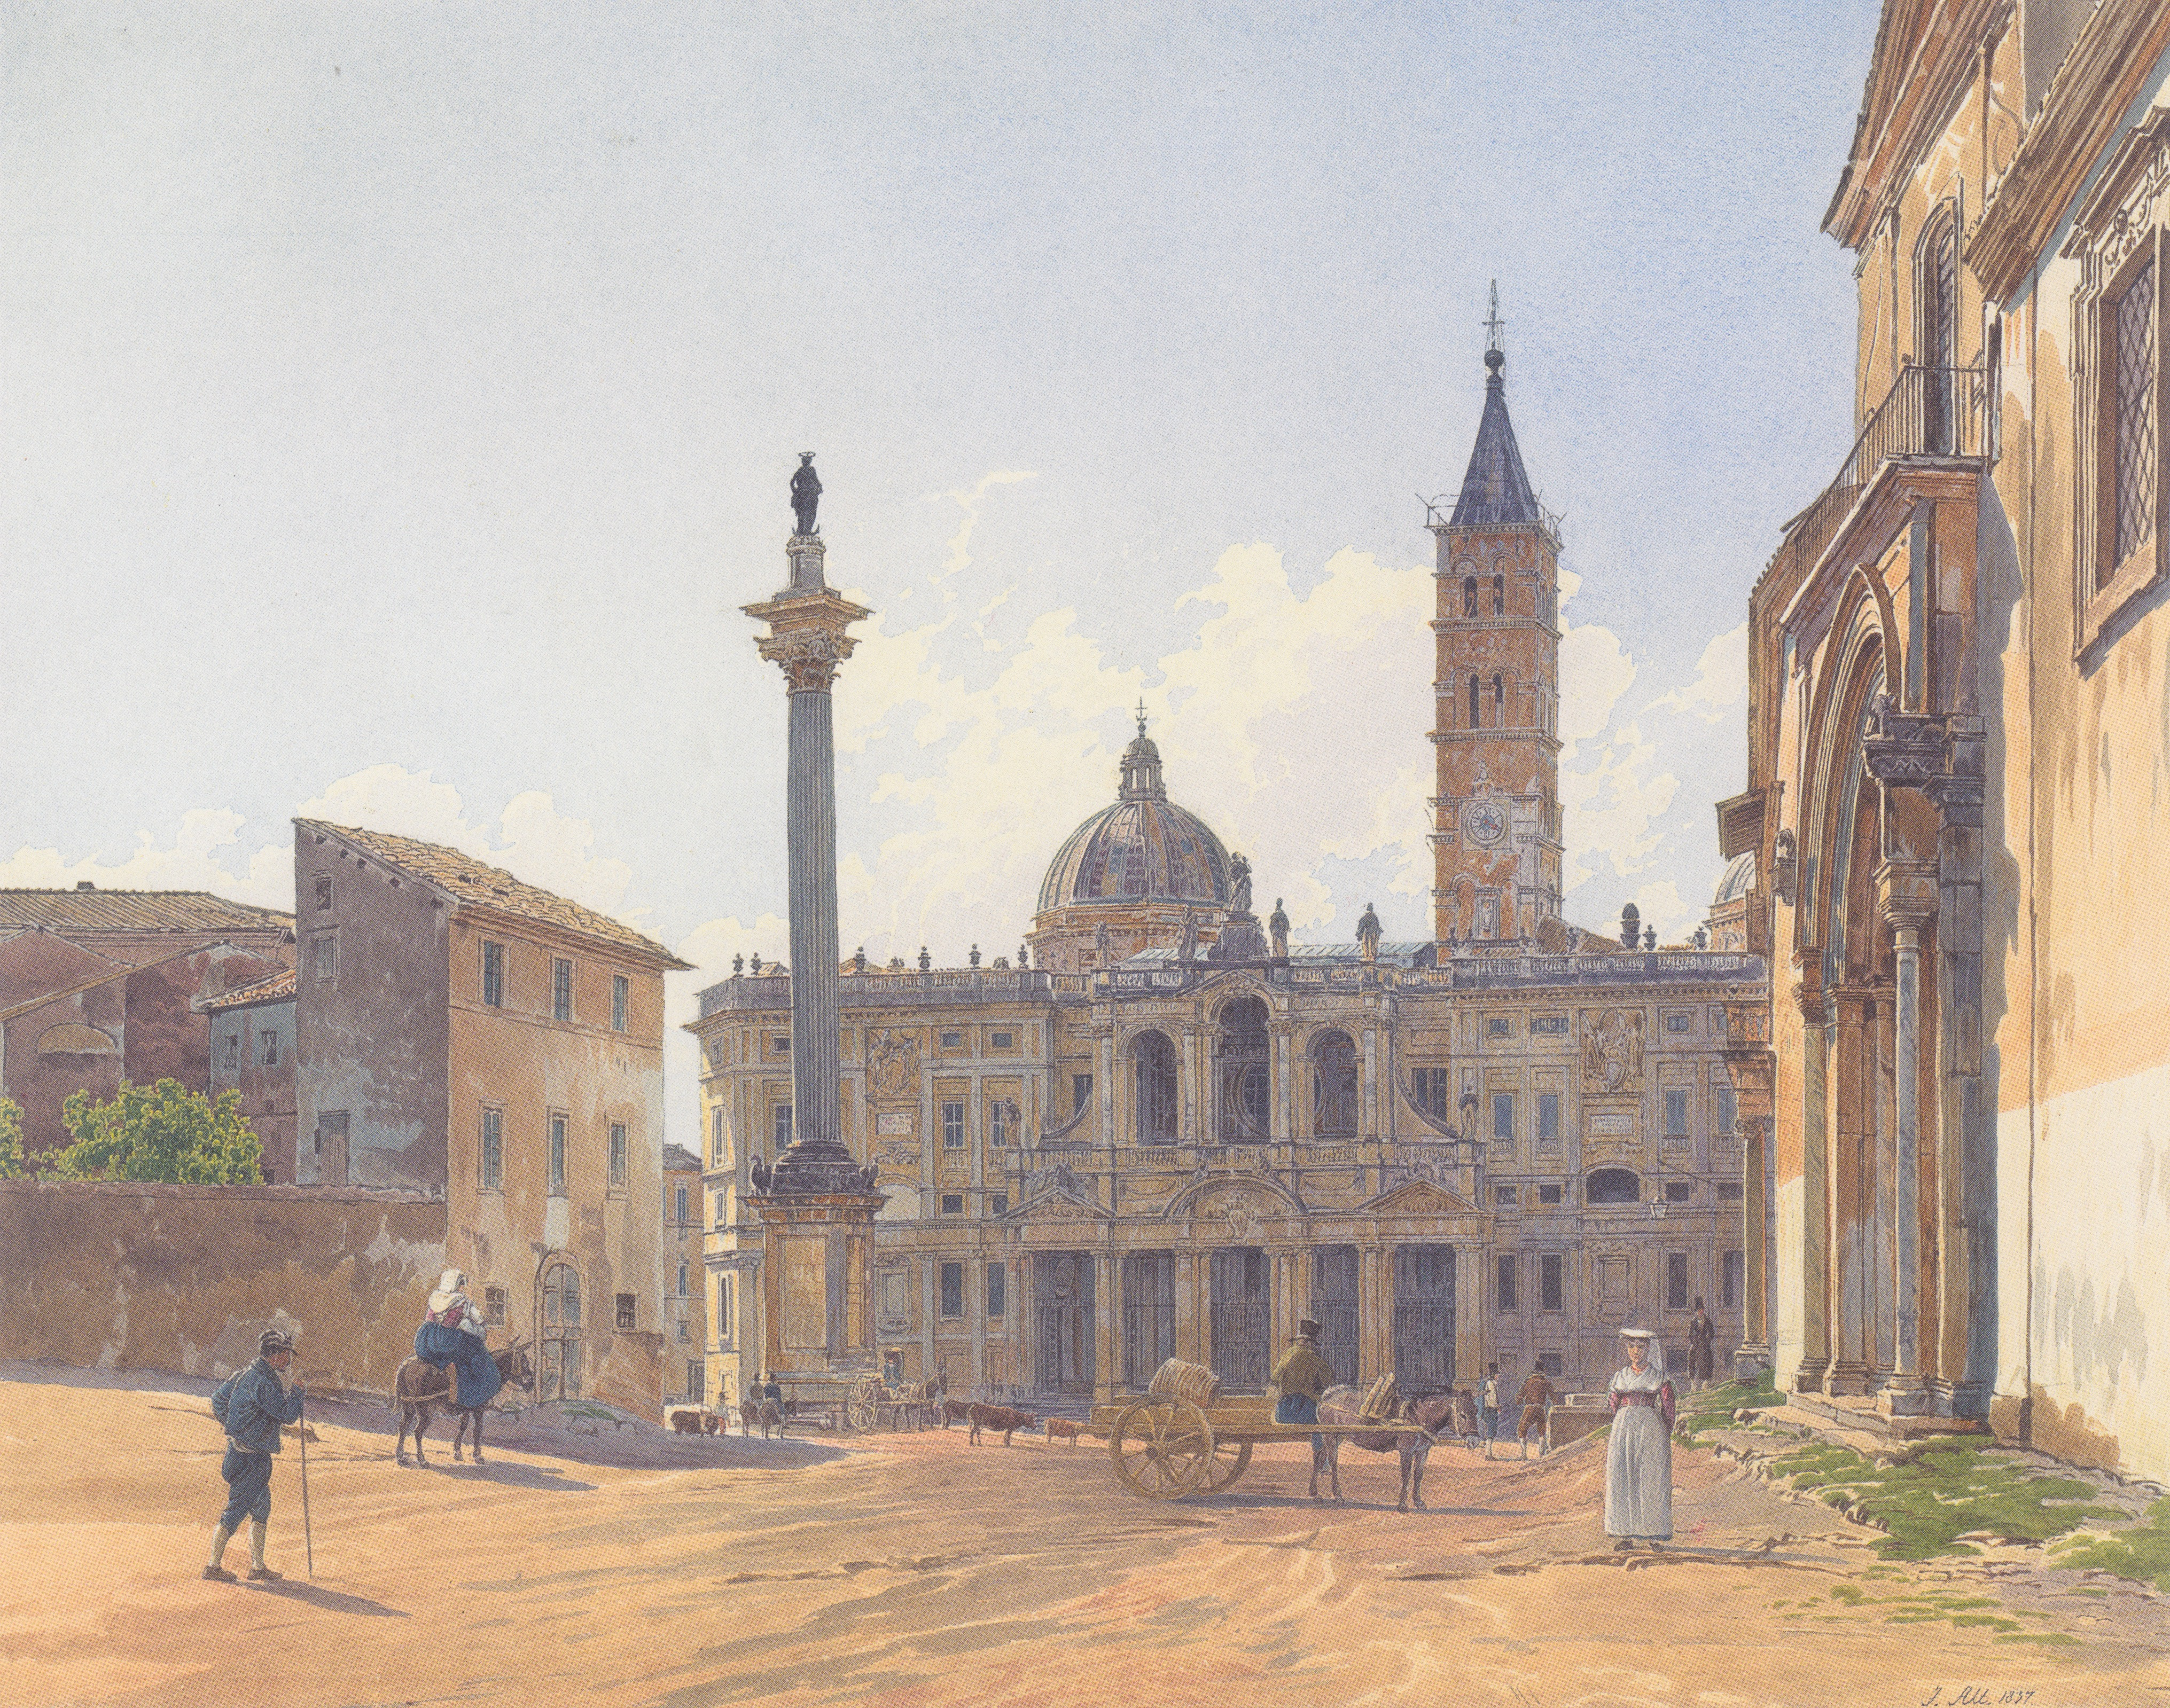 The Basilica of Santa Maria Maggiore in Rome, 1837